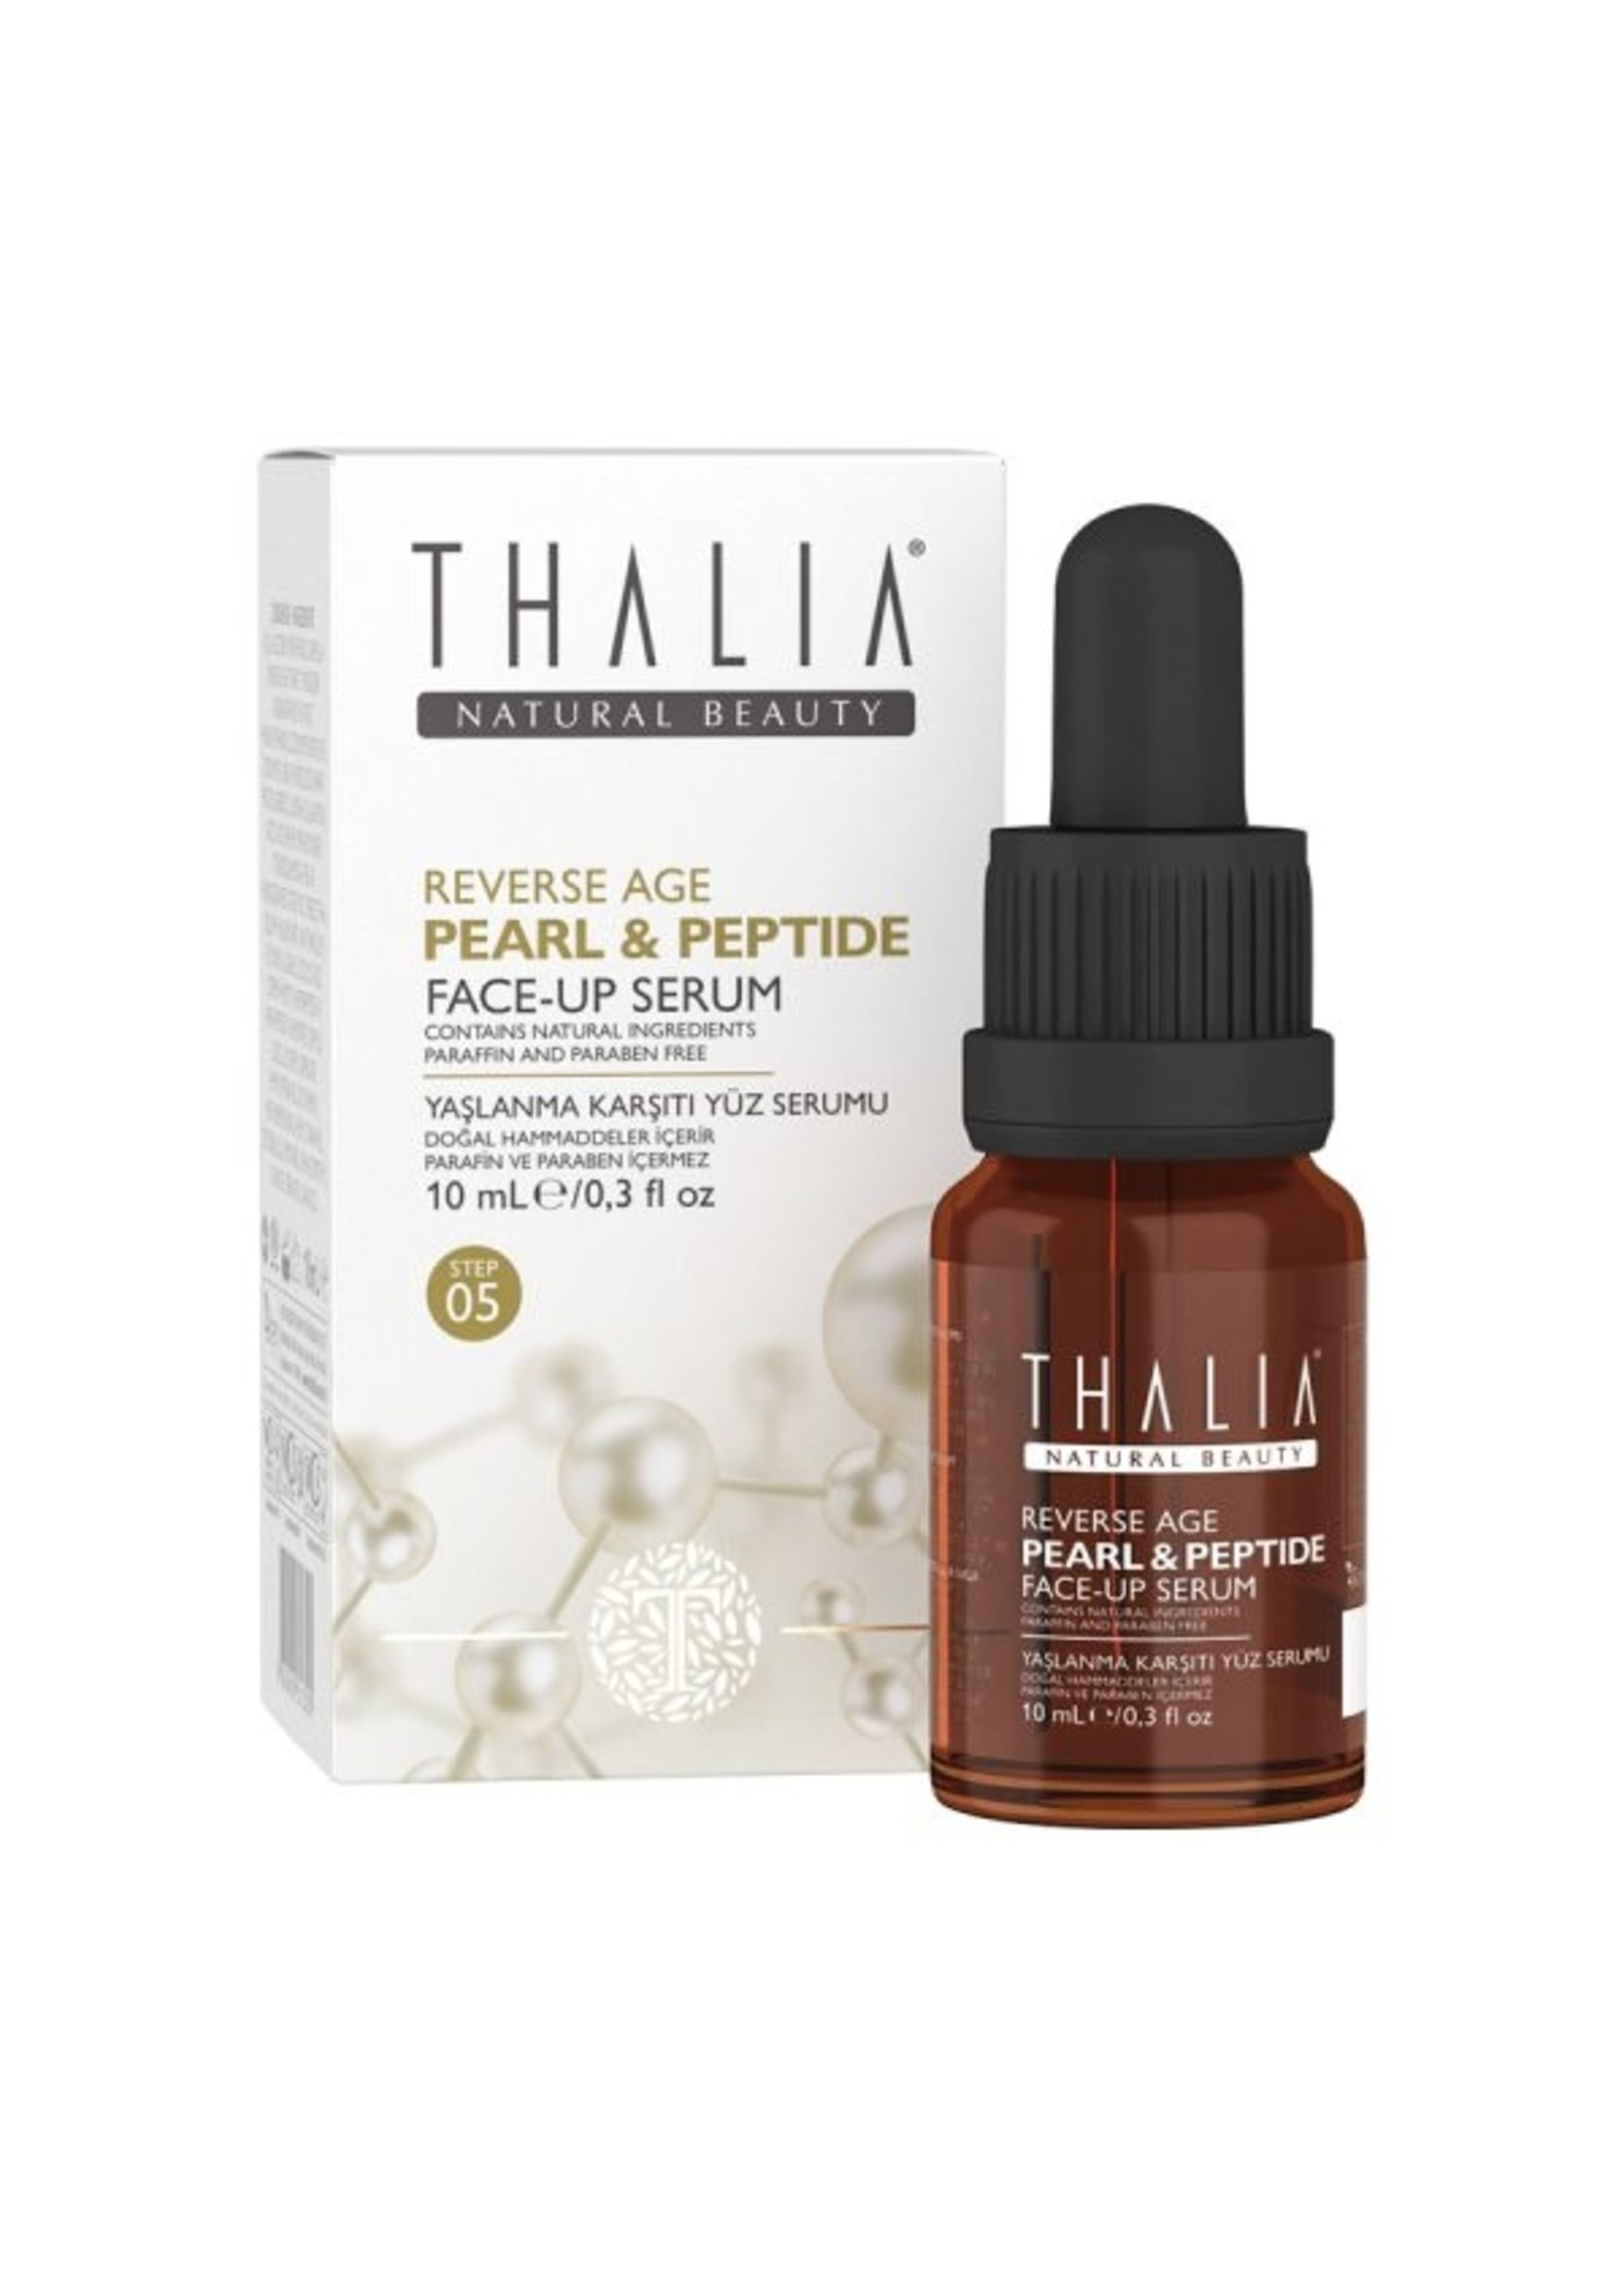 Thalia Parel & Peptide Gezichtsserum 10 ml